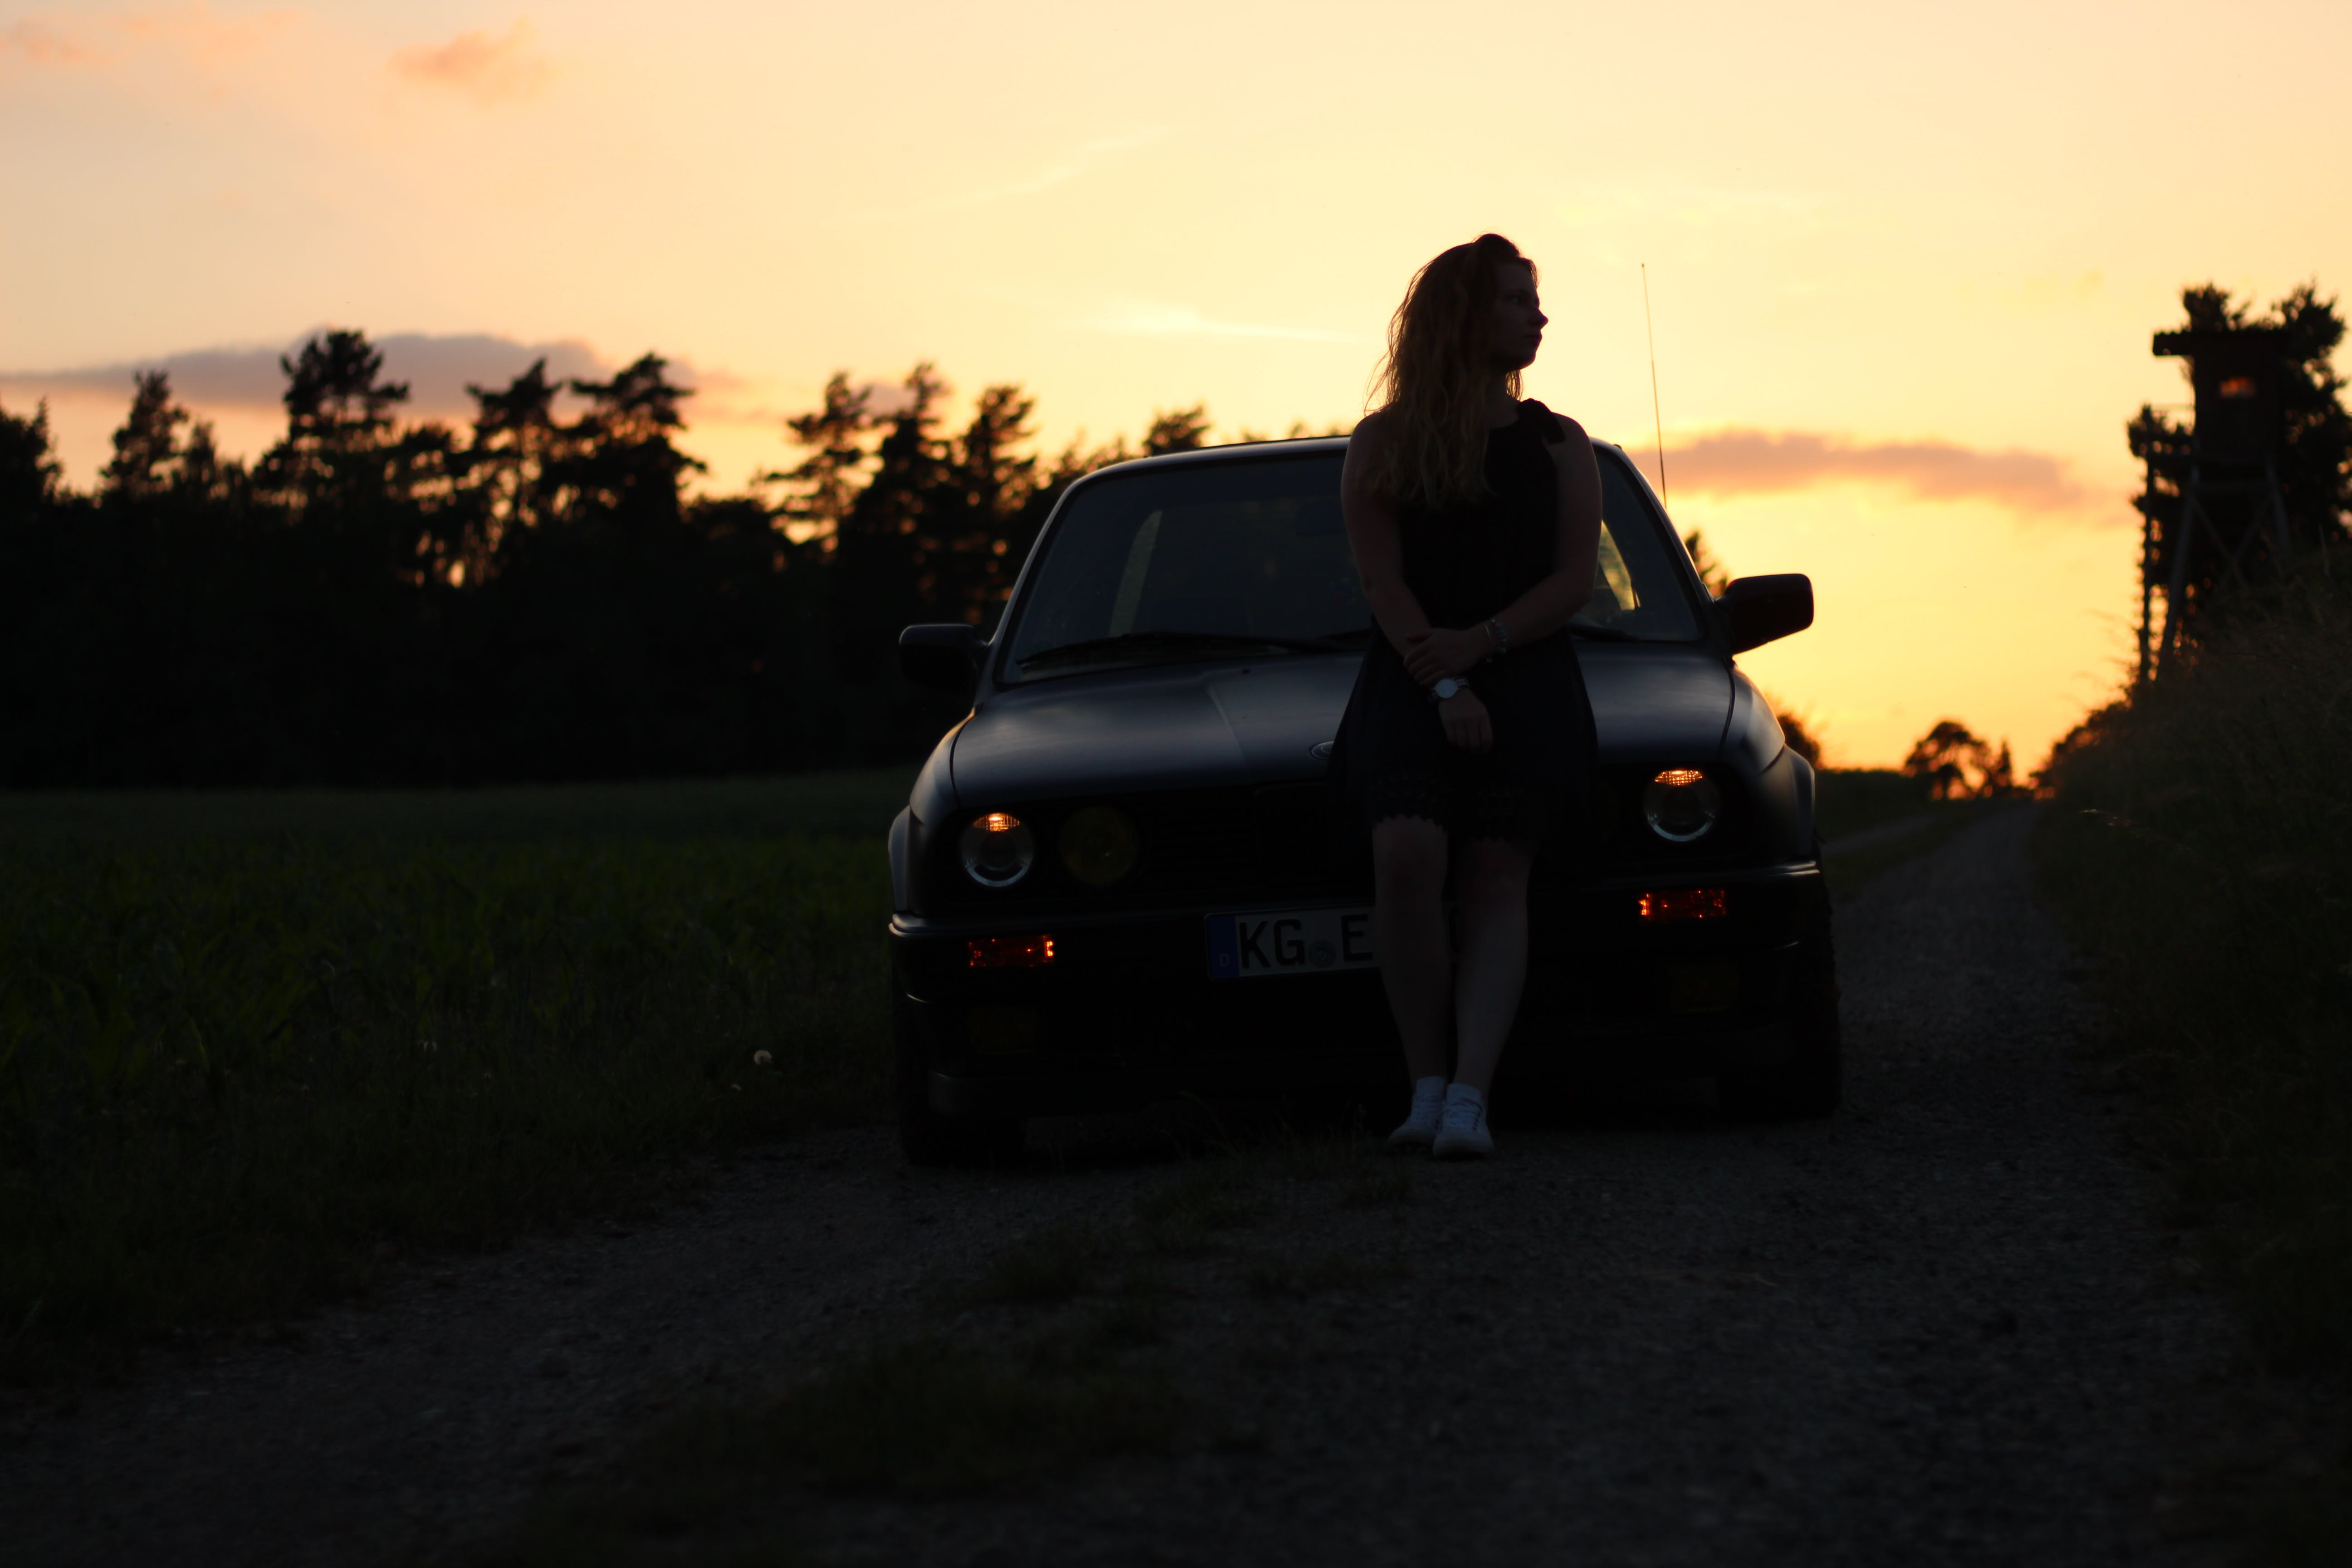 Free stock photo of e30, i love you, young girl, young woman